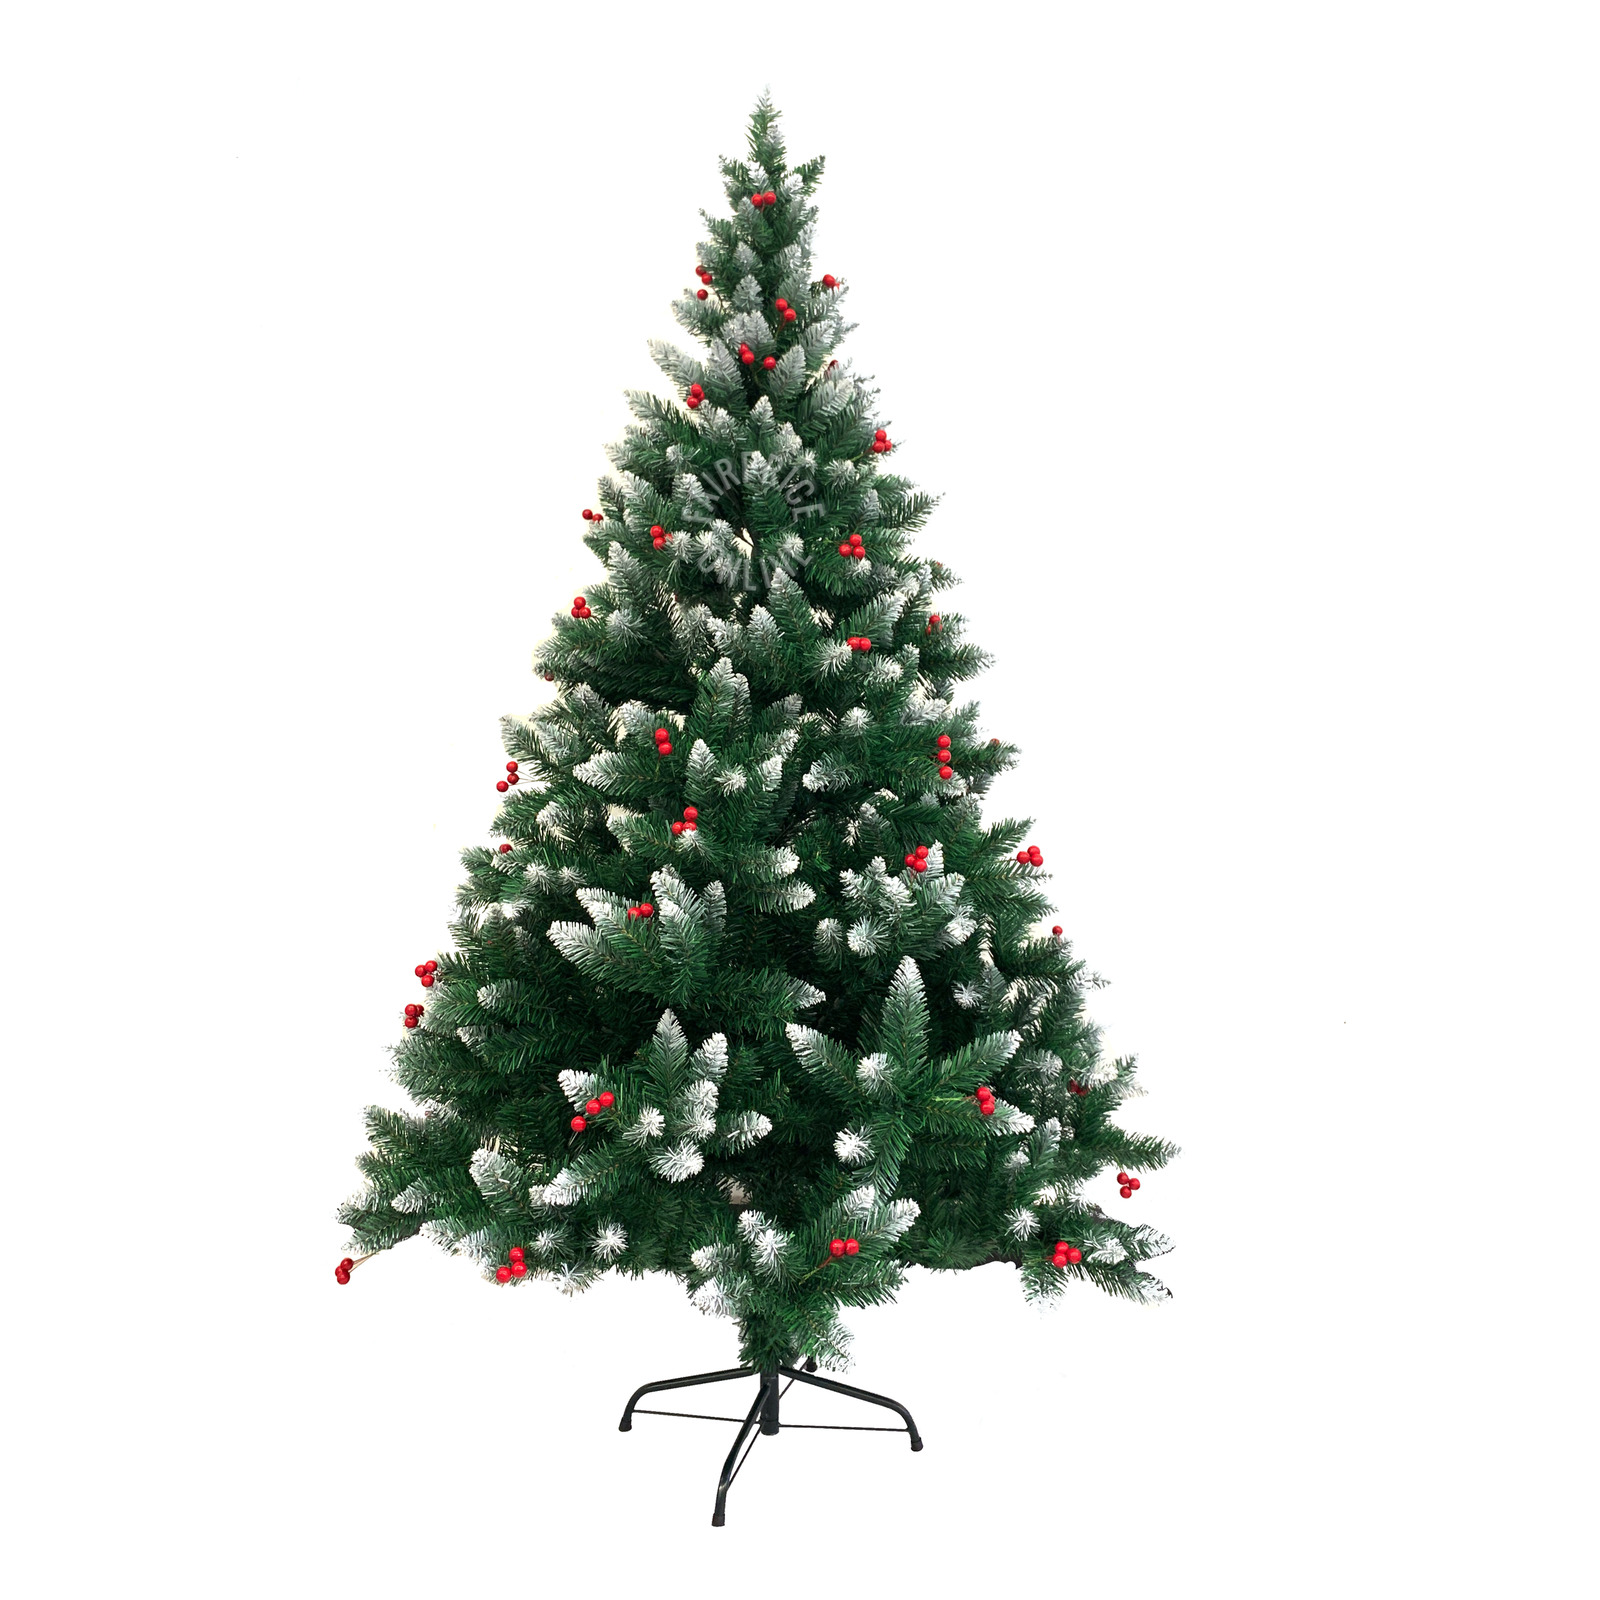 Imported Christmas Tree (1.8M)